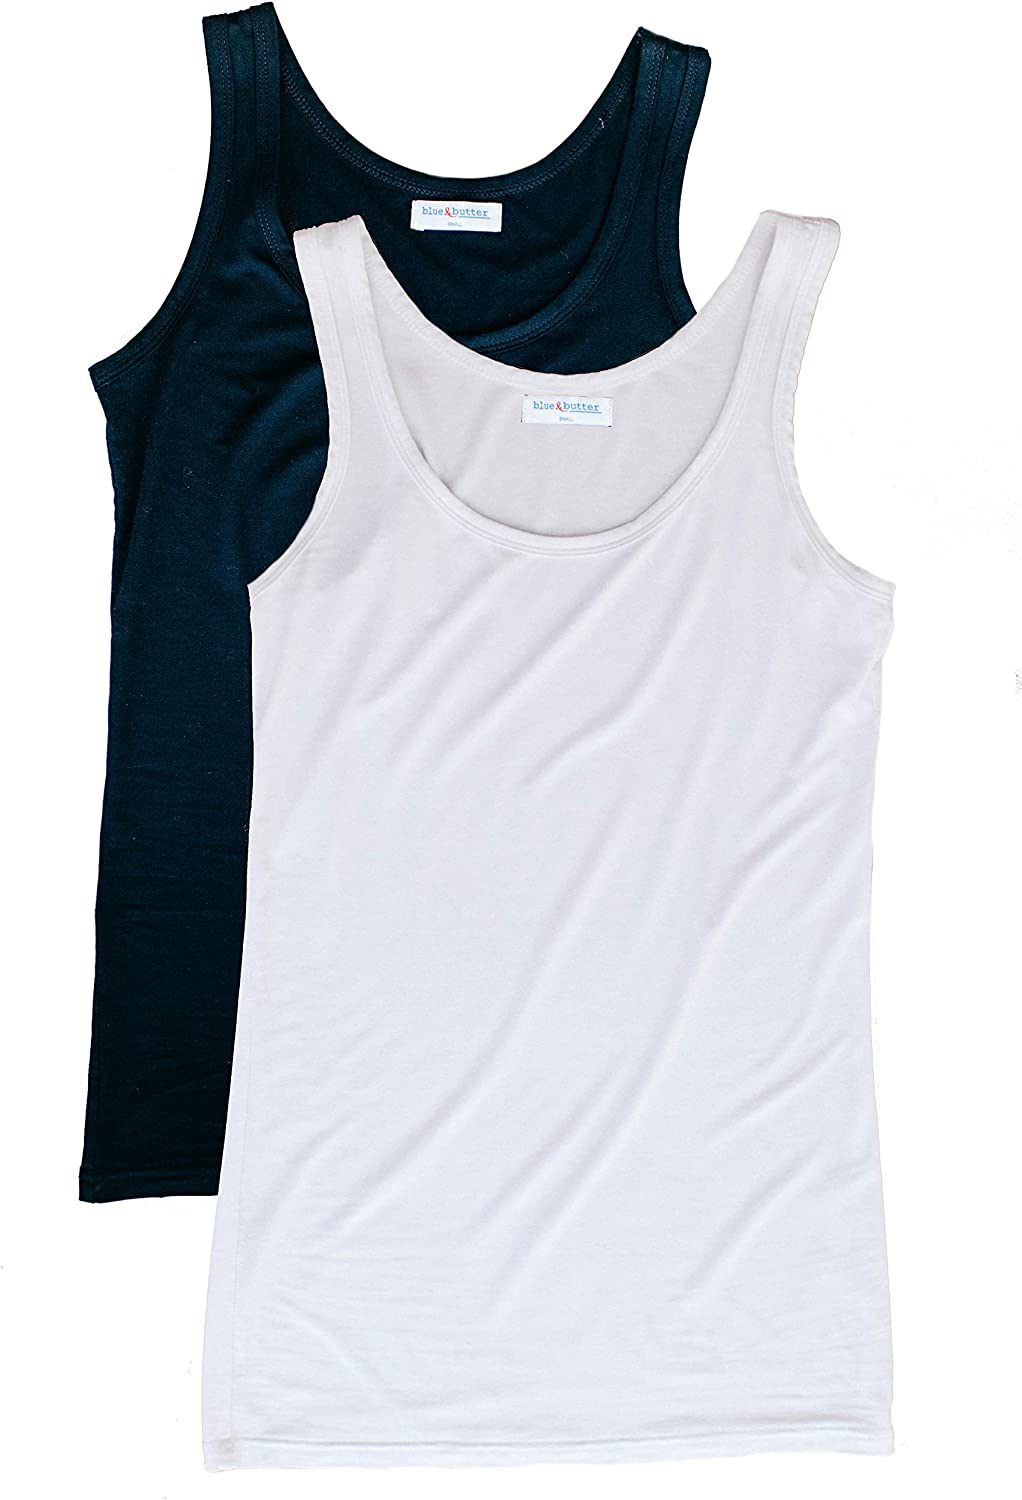 bluee & Butter Women's Fitted Modal Tank Top 2Pack (Black White)   Soft Basic Long Tank Top Perfect for Travel Yoga Everyday